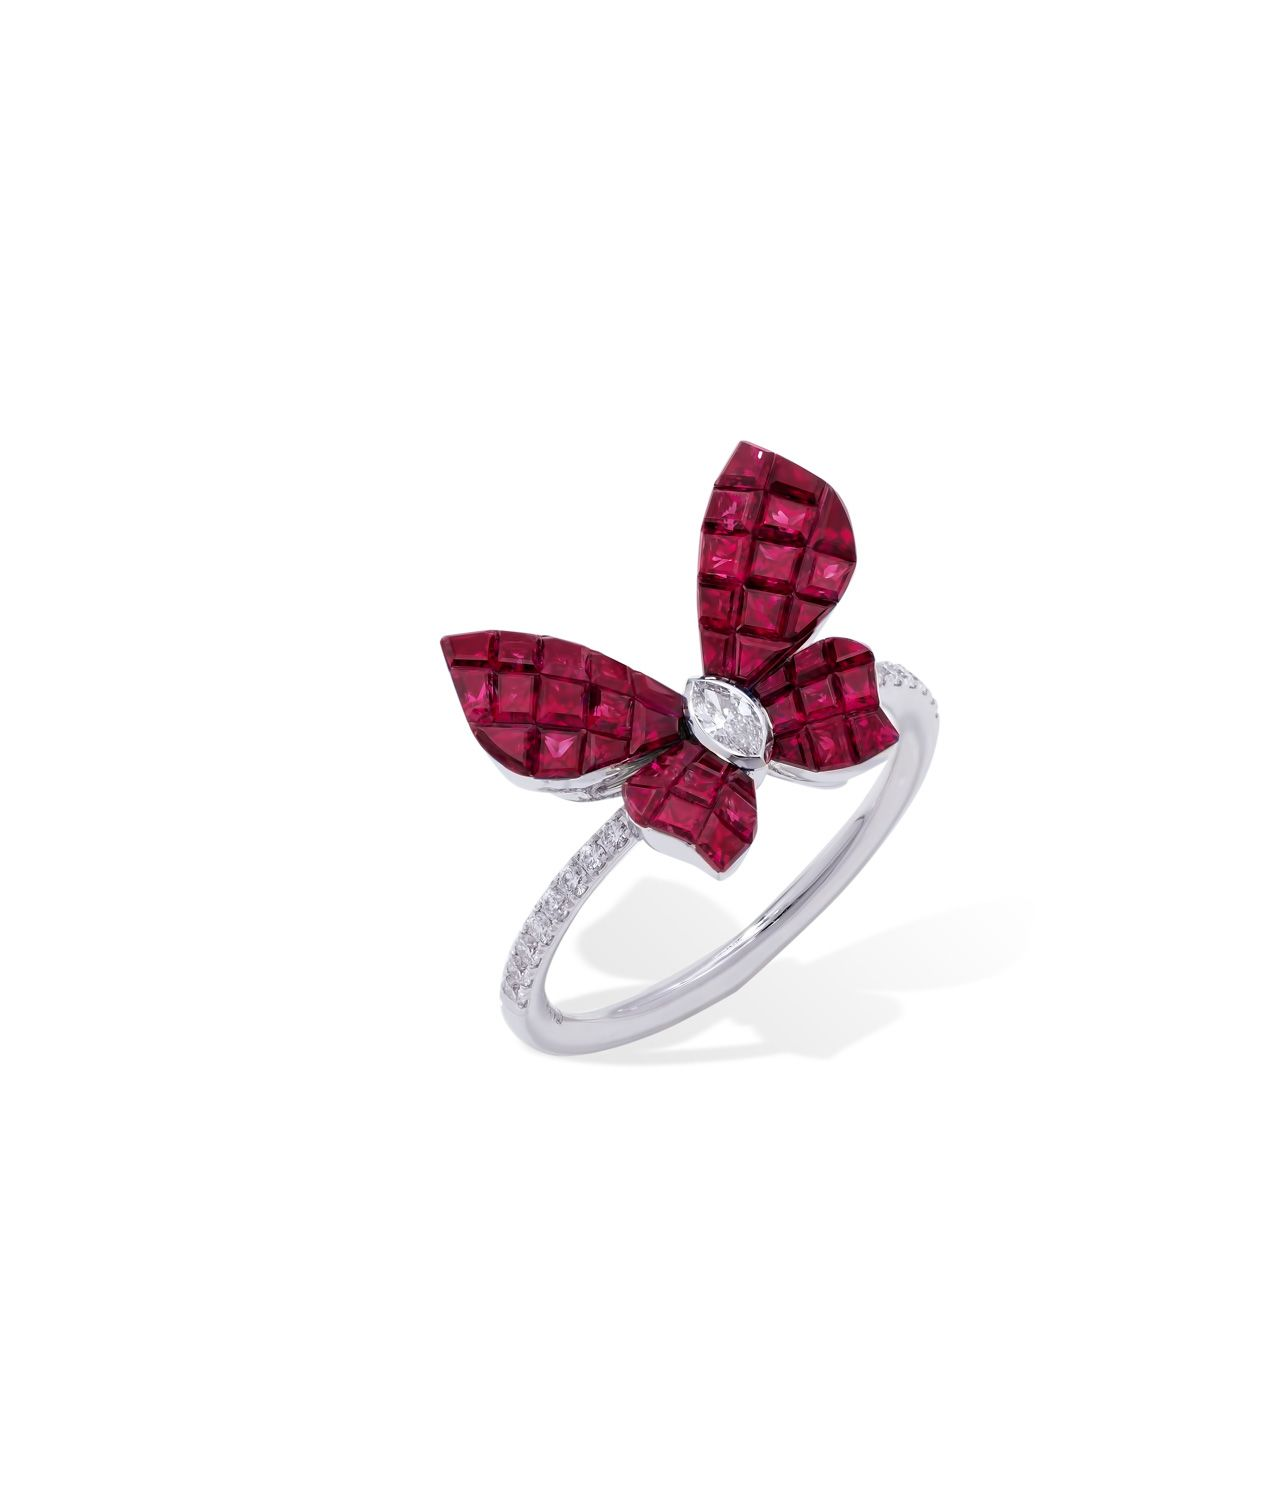 Mademoiselle B. by Stenzhorn. Petit ring in Mosaic setting rubies and white diamonds